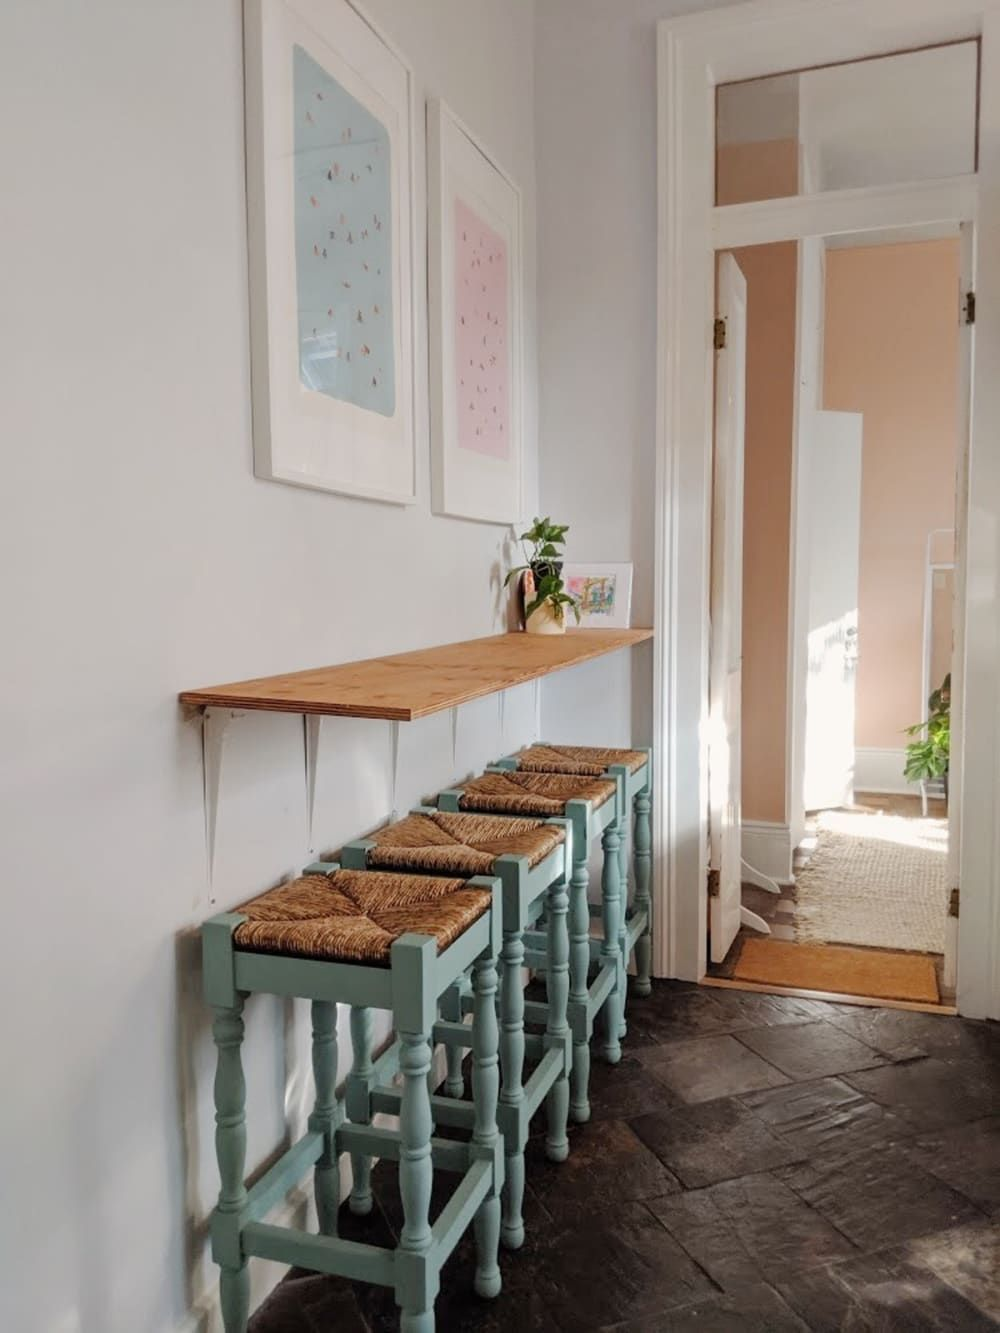 A Small Rental Apartment Has The Cutest Diy Kitchen Bar Diy Breakfast Bar Kitchen Bar Diy Kitchen